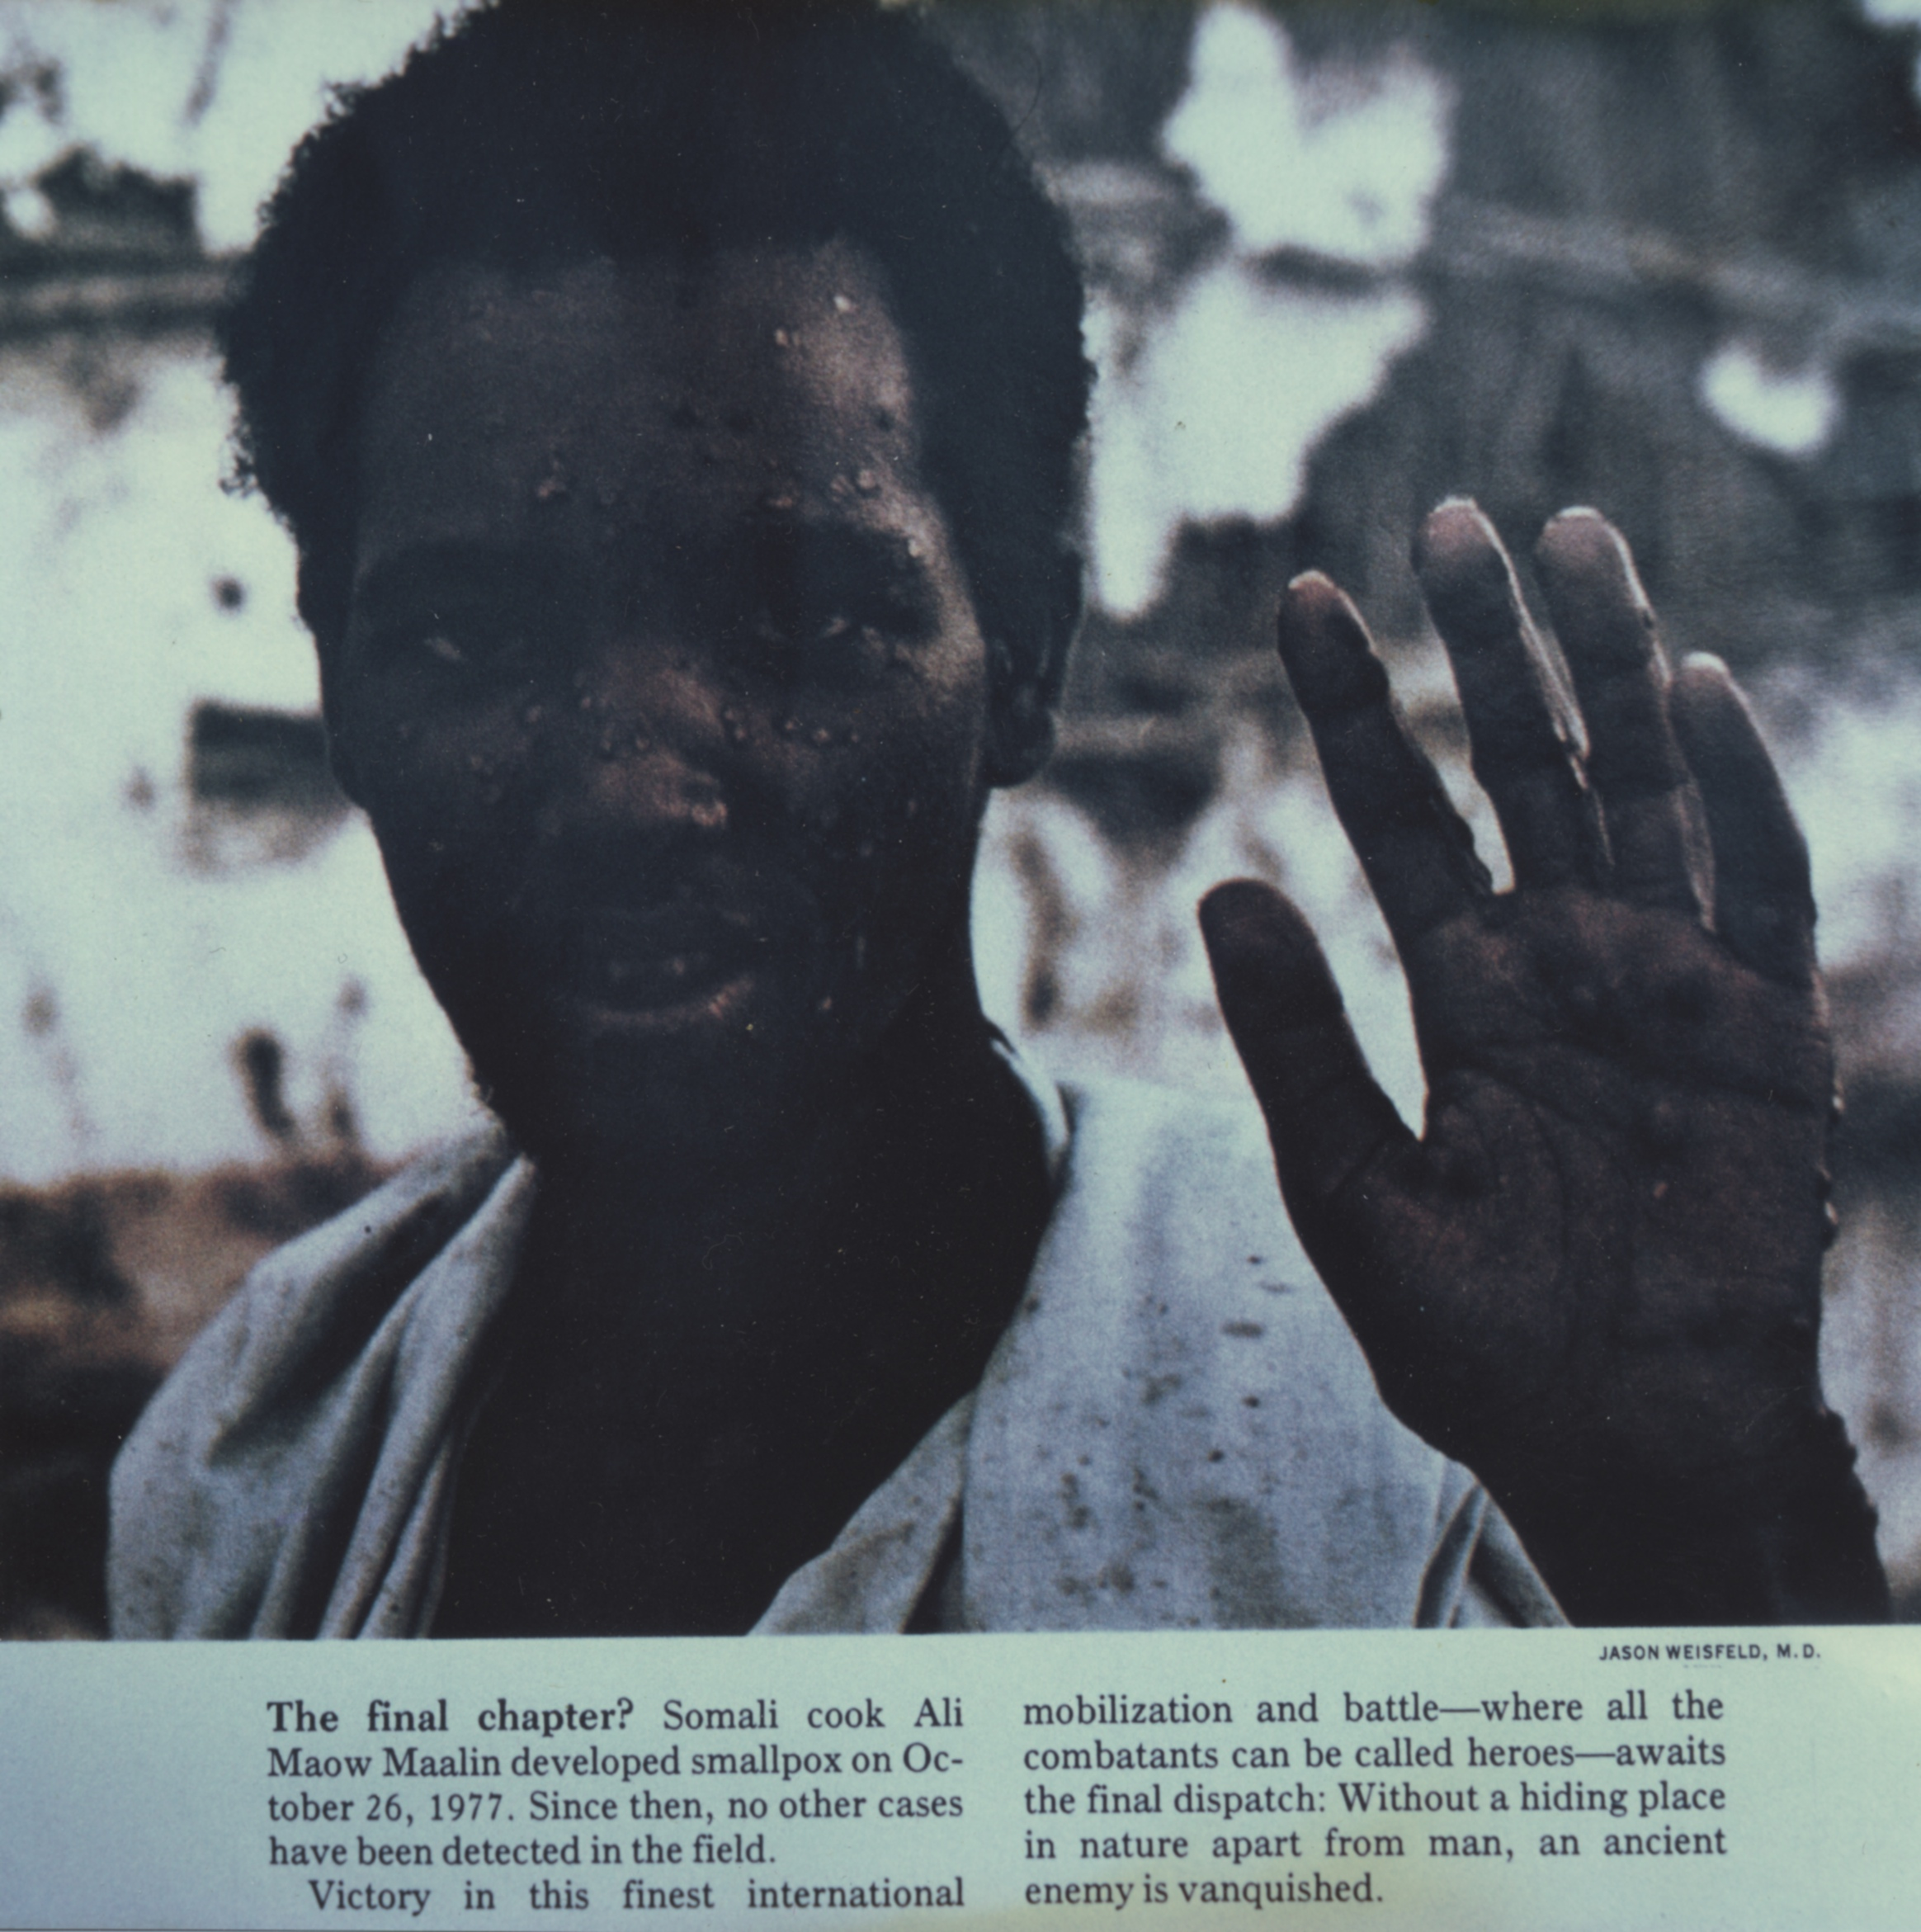 Photo of Ali Maow Mallin, who in October 1977 was the last person on Earth to be naturally infected with smallpox. There were a few unnaturally occurring smallpox cases in September 1978, which were the result of a laboratory accident in Birmingham, England, that led to one death and a limited outbreak.